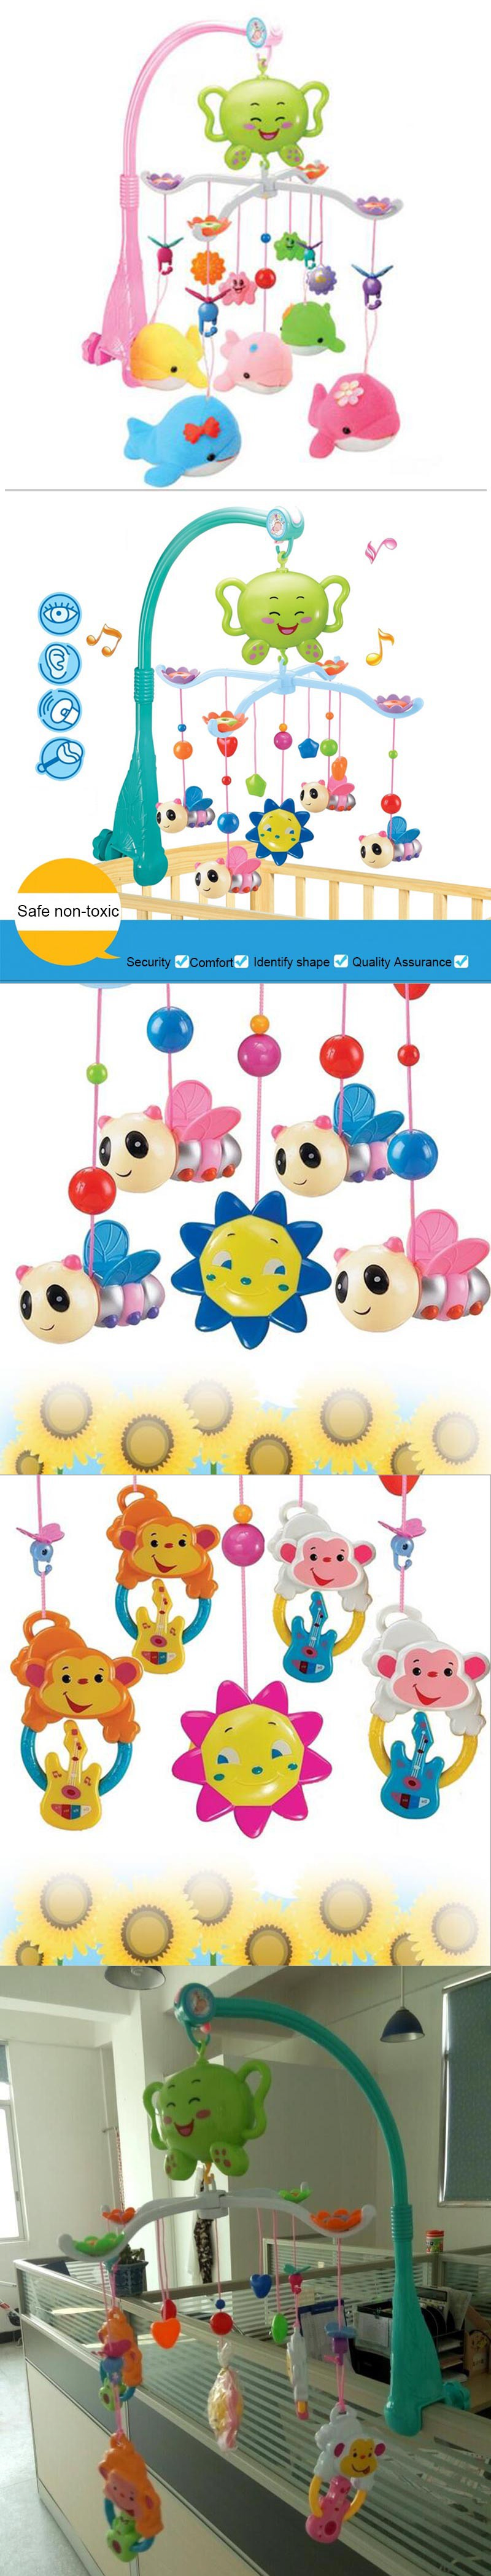 Baby bed holder - Baby Crib Musical Mobile Cot Bell With 12 Light Music Holder Arm Baby Bed Hanging Rattle